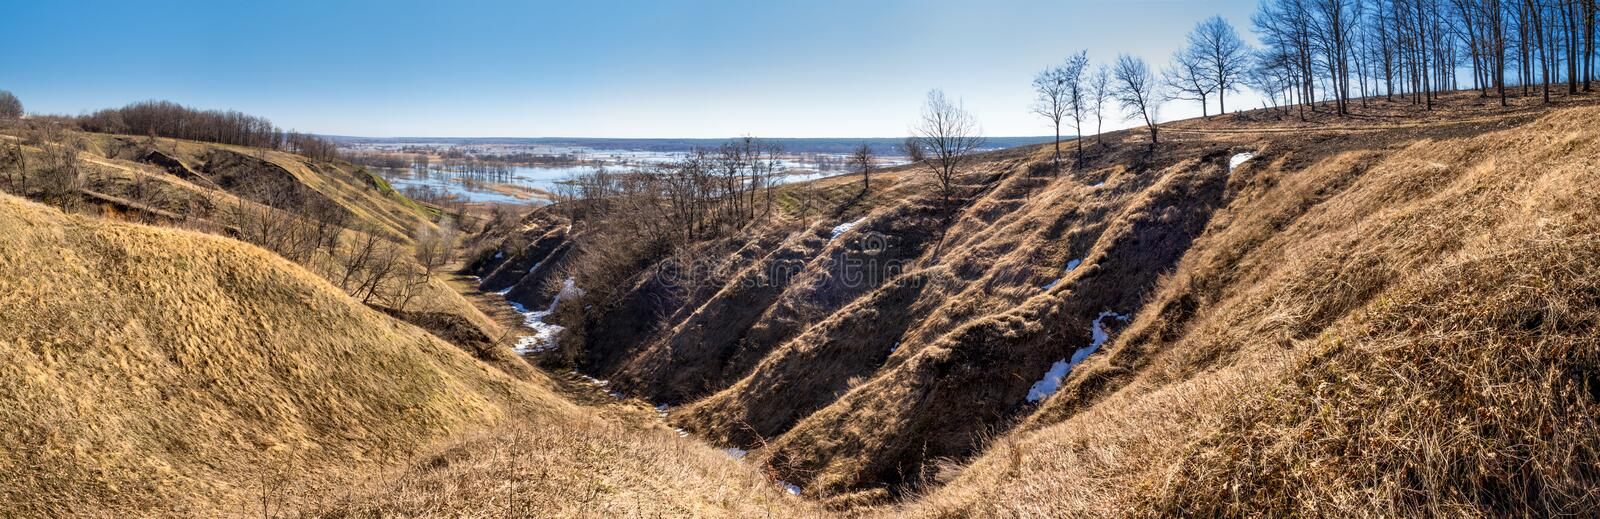 Spring landscape, panorama, banner - spurs of ravine near the flooding winding river over the meadows between hills and forests royalty free stock photo